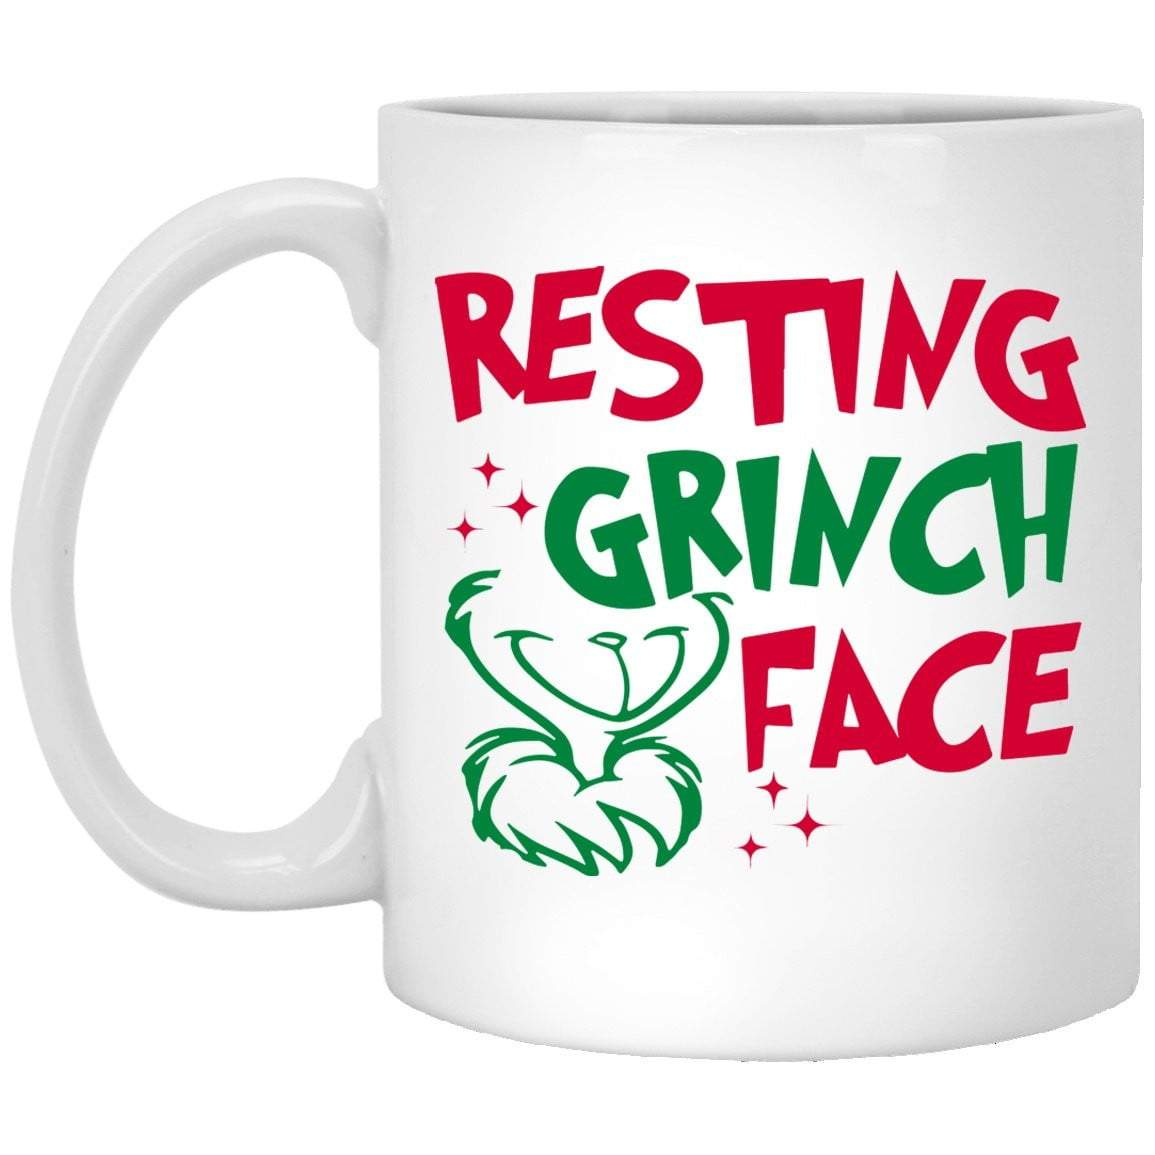 Christmas Coffee Mugs.Resting Grinch Face Christmas Coffee Mug Apparel Shop 21